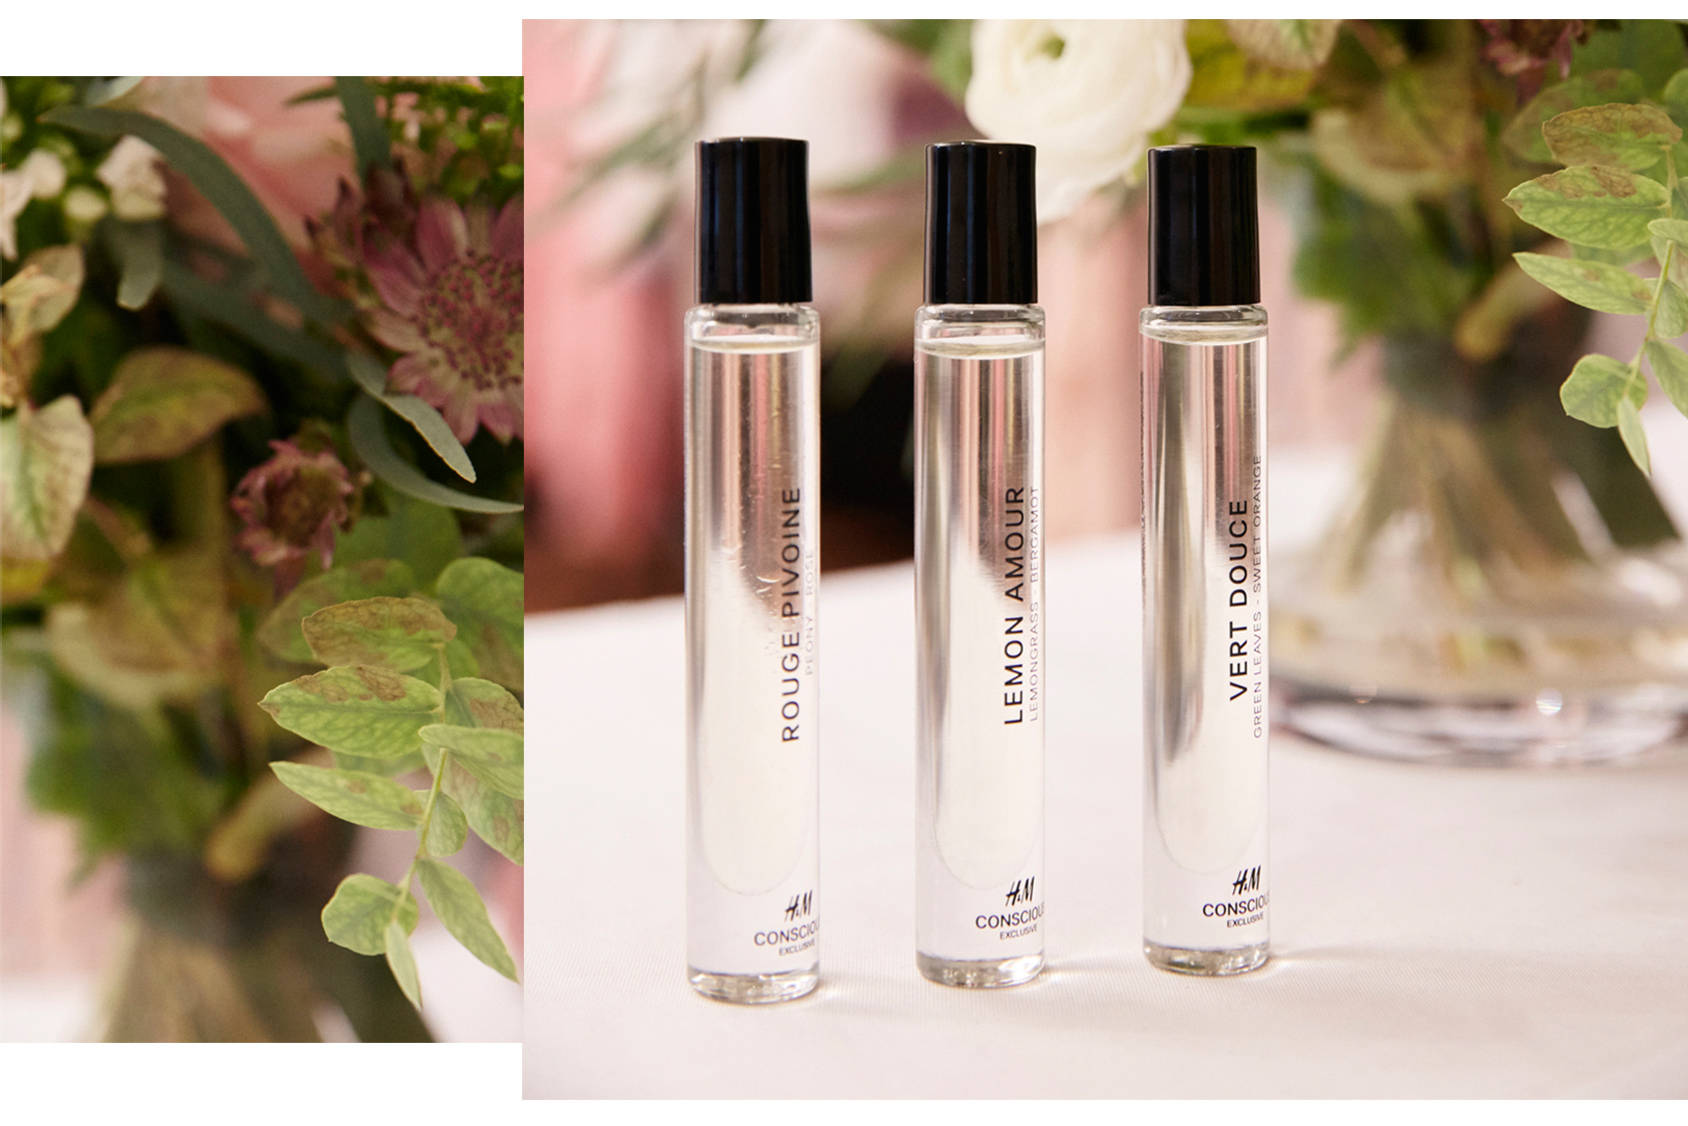 Introducing: Organic Fragrance Oils made to last